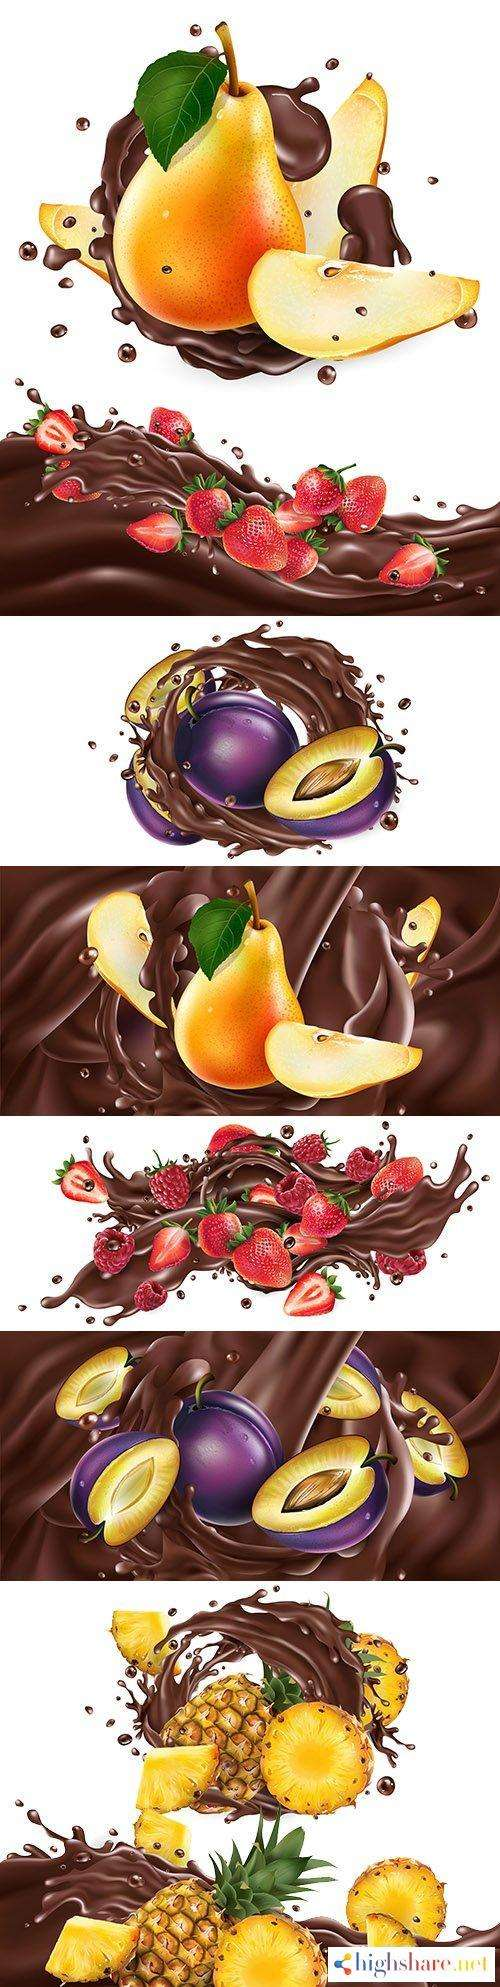 whole and chopped fruit in chocolate splash realistic illustrations 5f4200806061a - Whole and chopped fruit in chocolate splash realistic illustrations